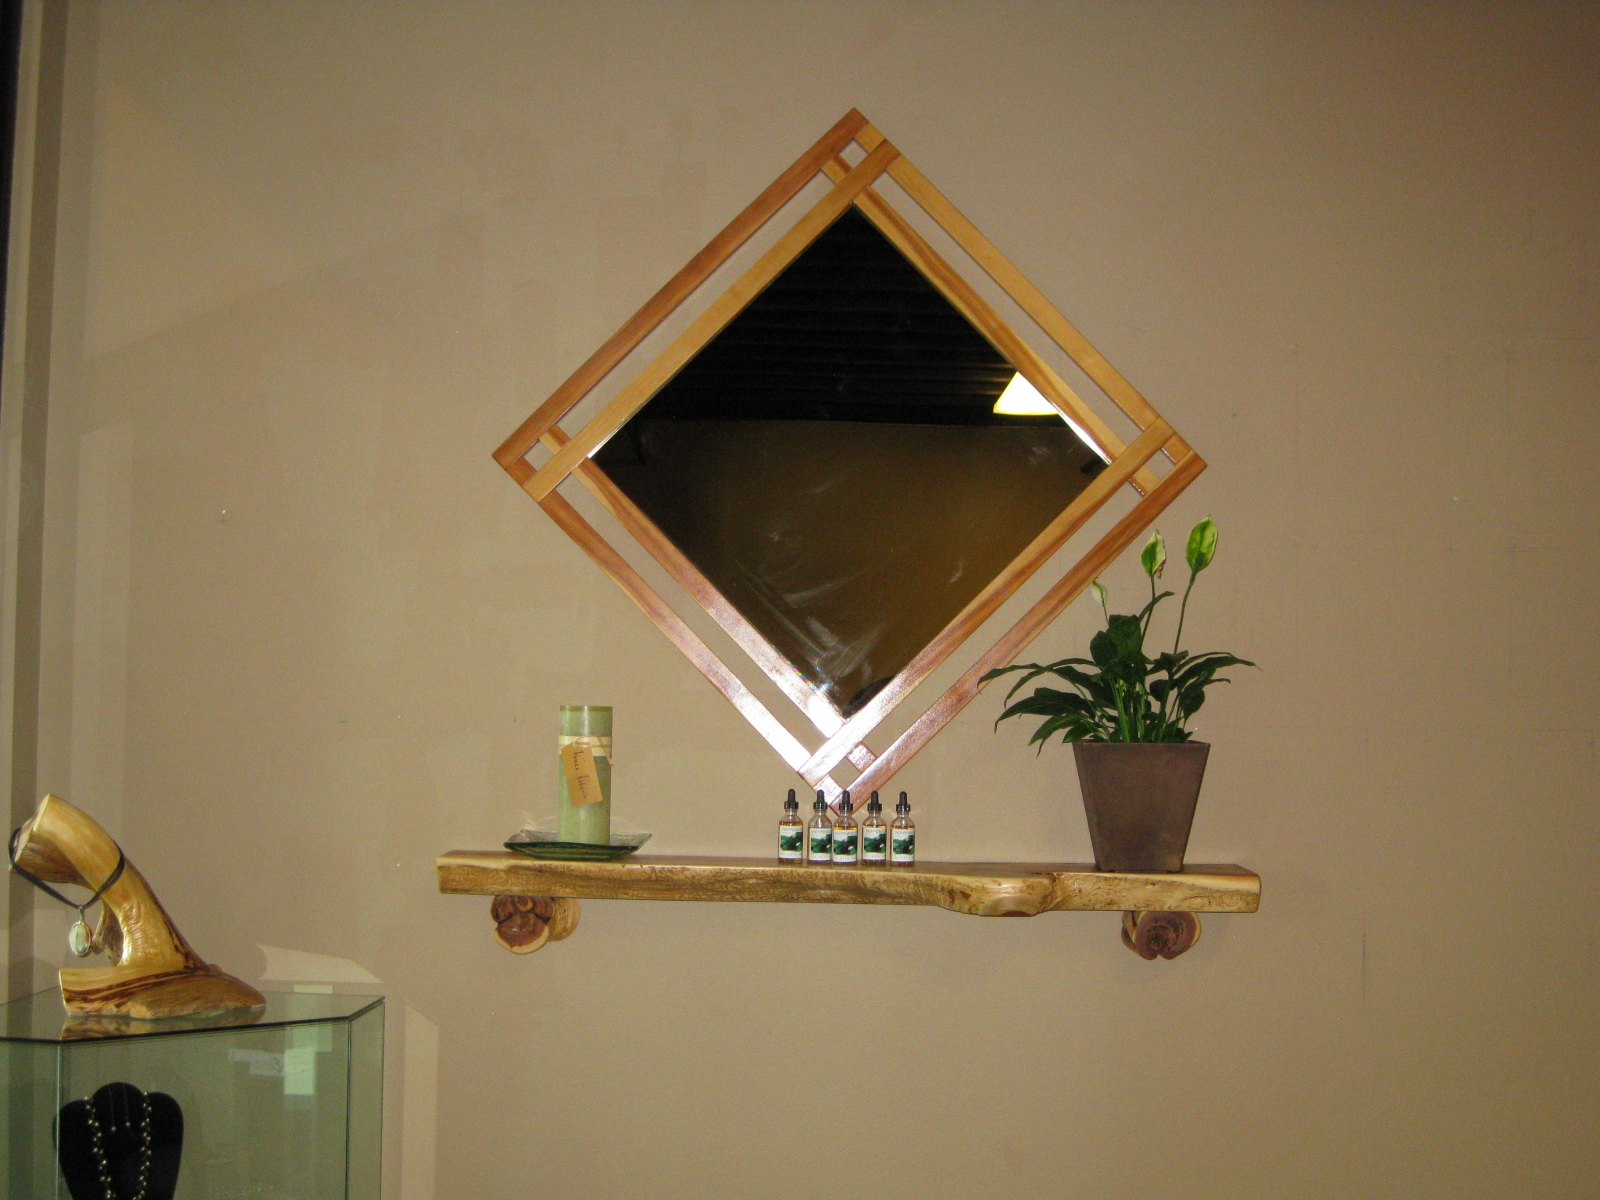 contempary juniper mirror over twisted juniper shelf